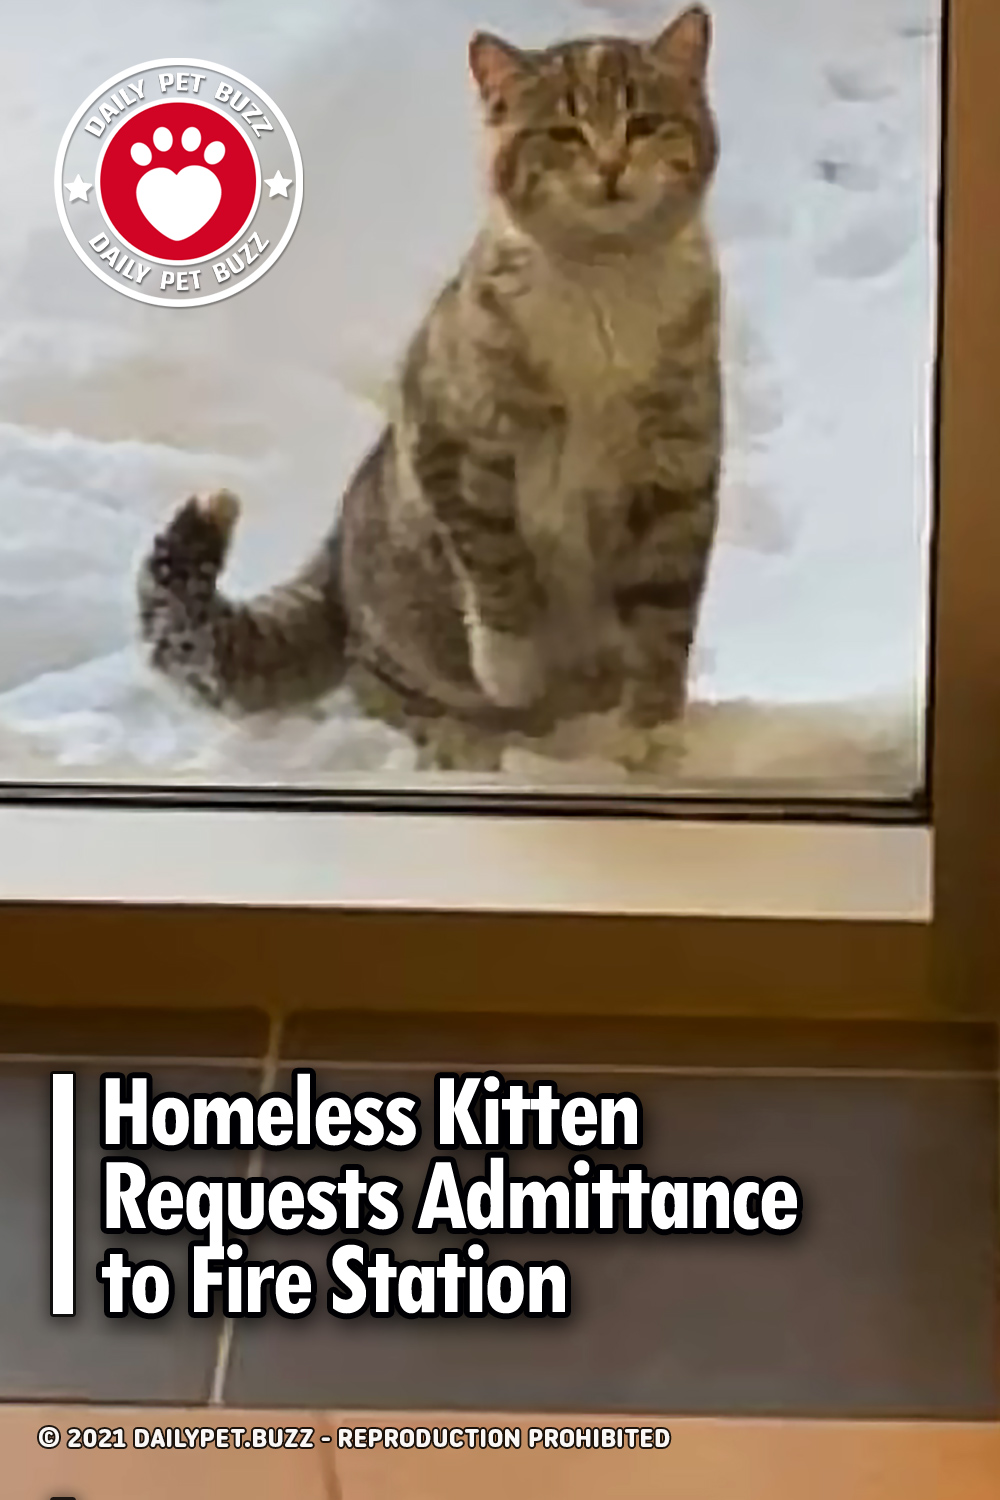 Homeless Kitten Requests Admittance to Fire Station